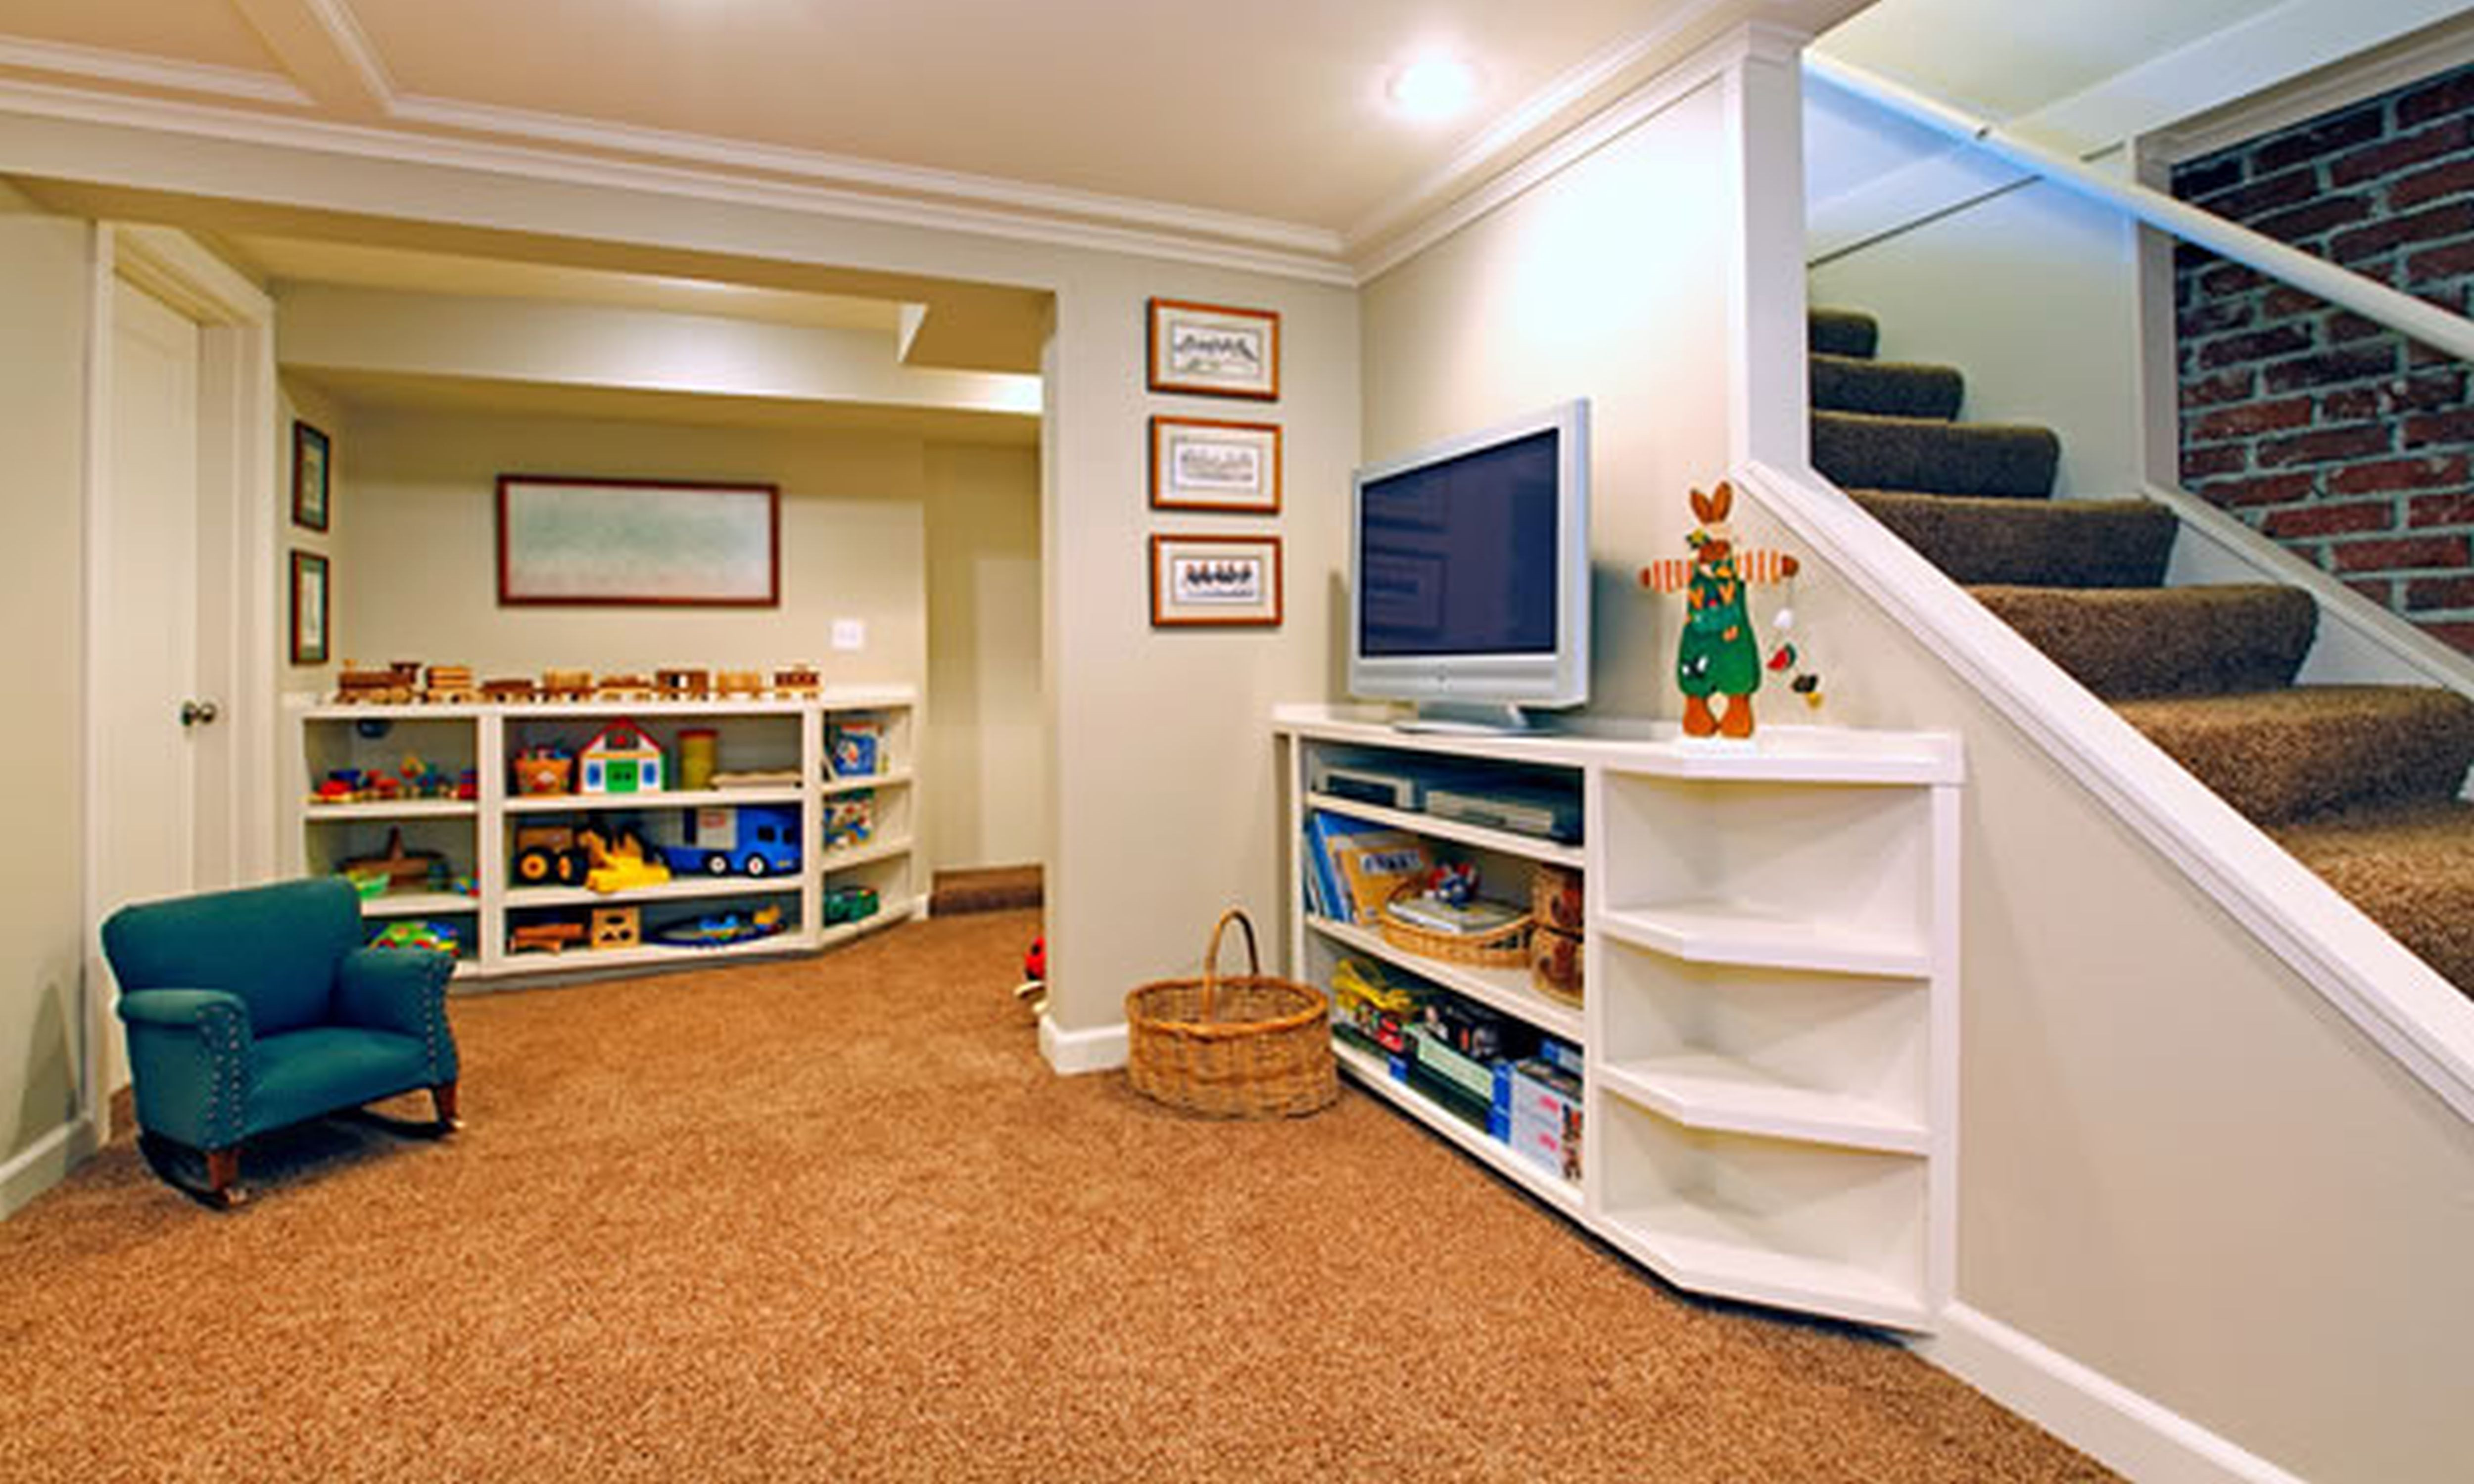 Best ideas about Small Basement Ideas On A Budget . Save or Pin Basement Finishing Projects High Tech Renovation Now.